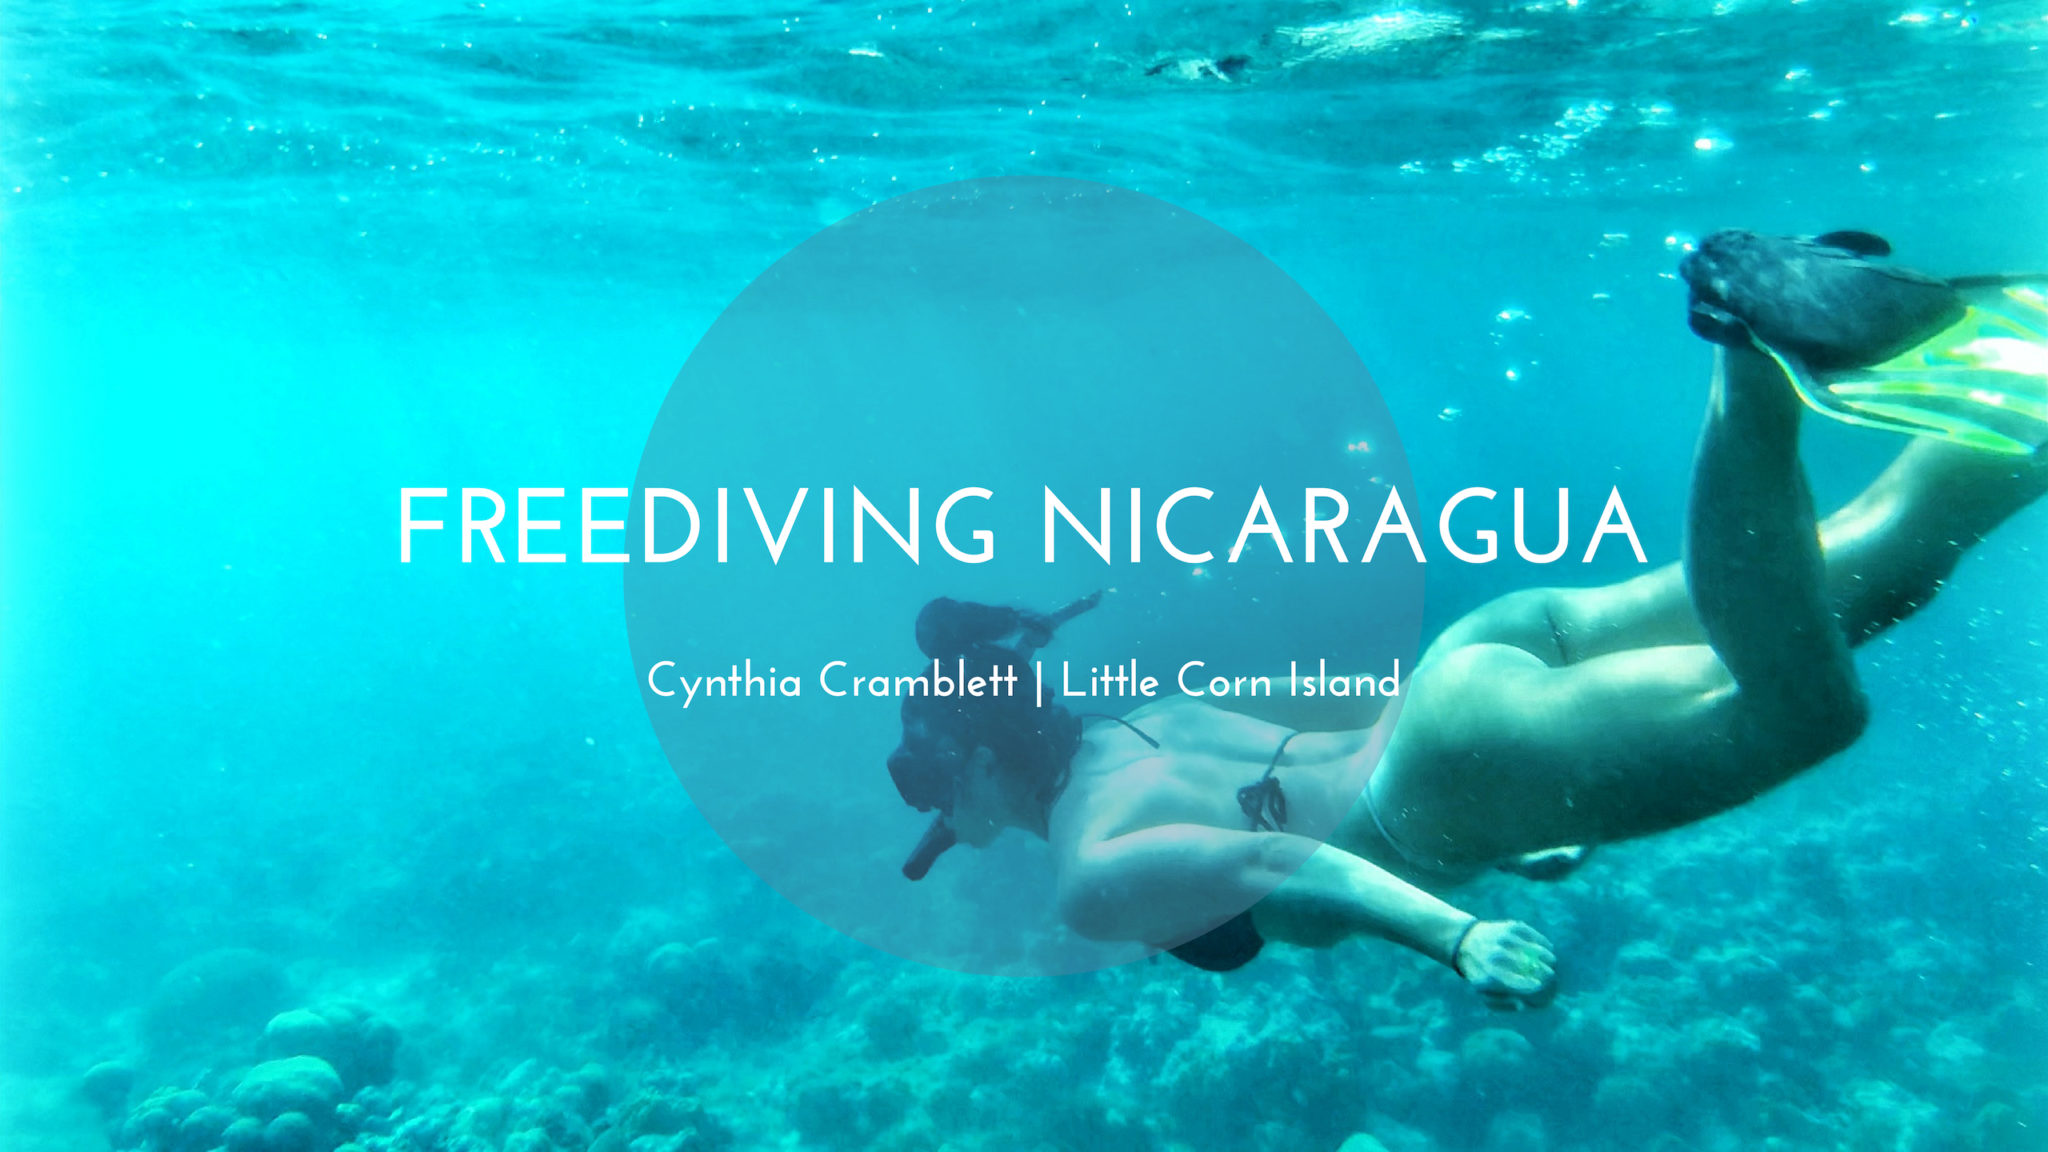 cynthia cramblett free diving